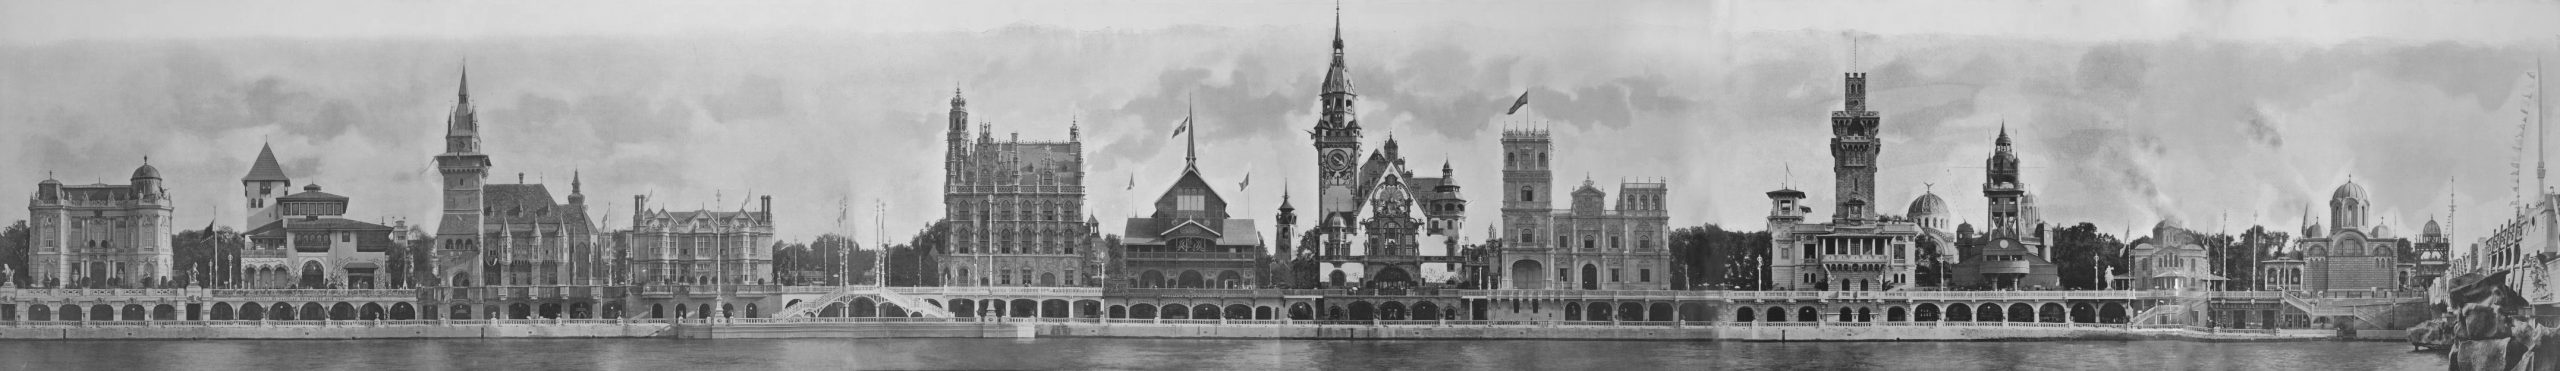 Panorama_of_foreign_pavilions_at_the_1900_Paris_World_Fair